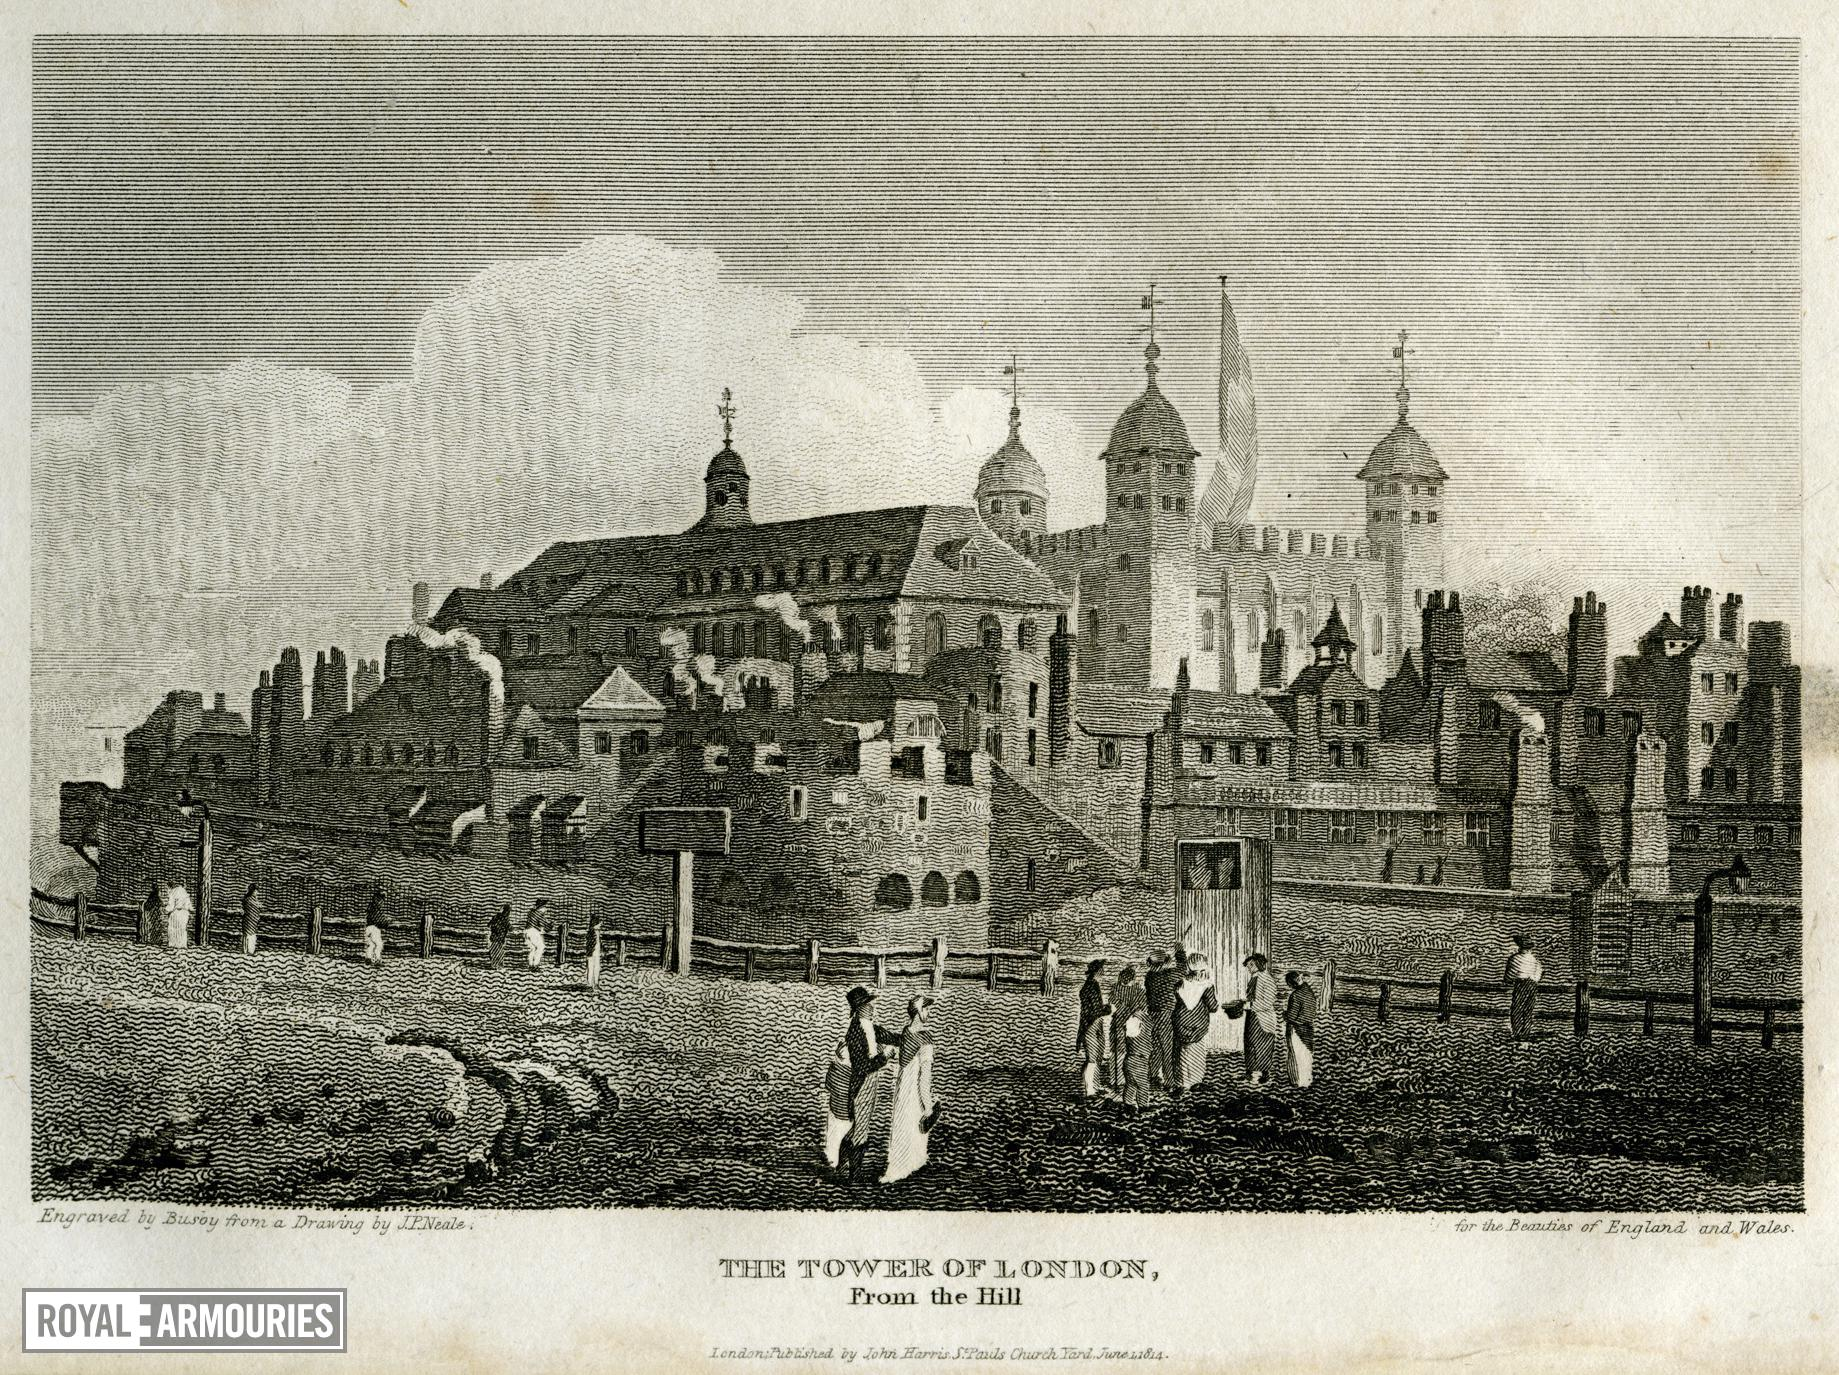 Print engraving of Tower of London from Tower Hill, about 1815.